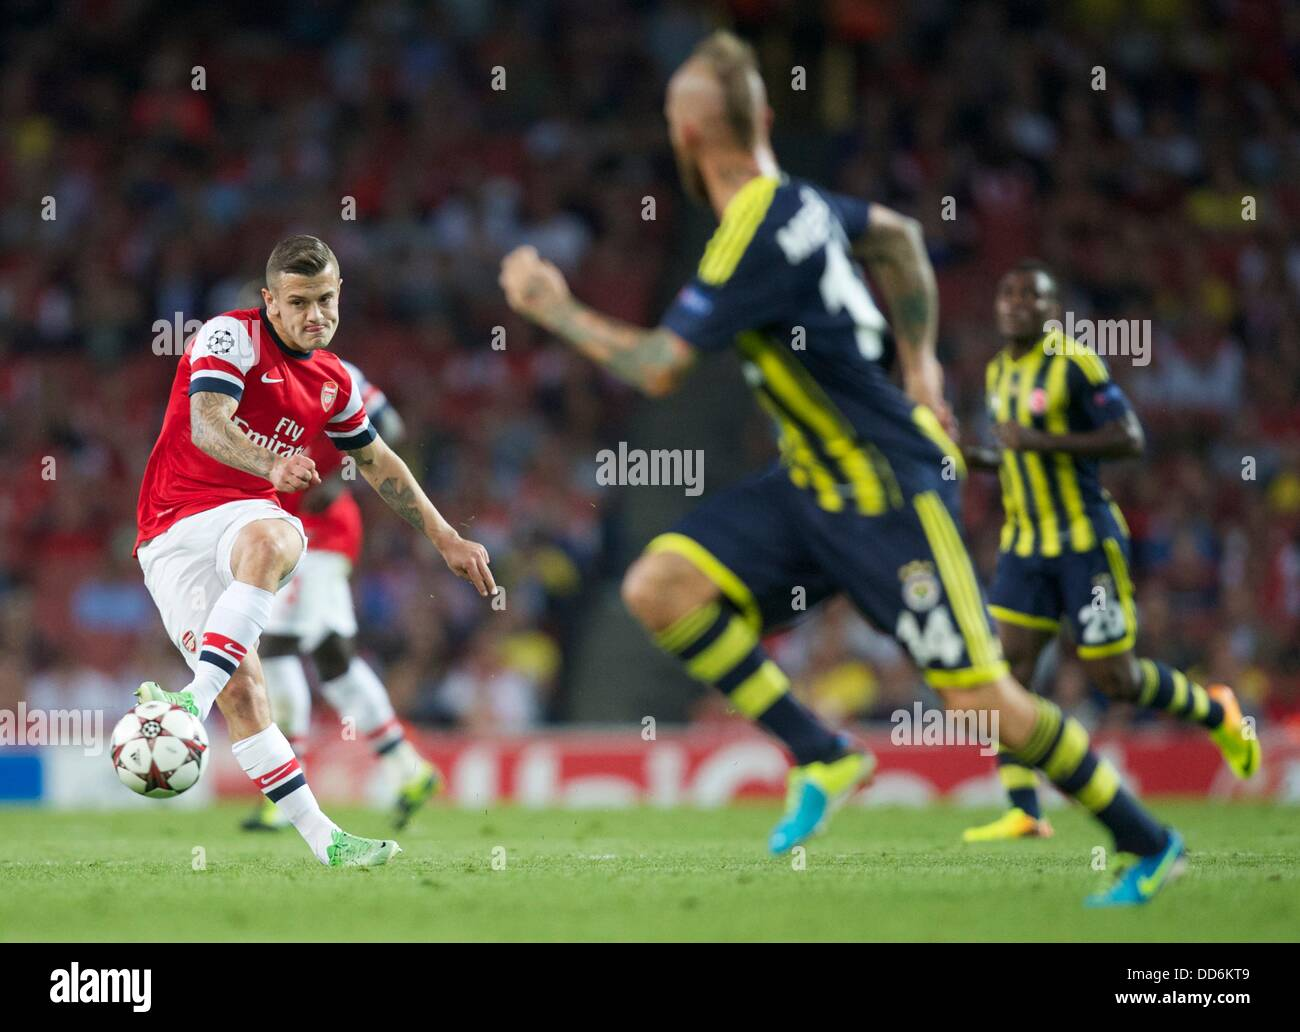 London, UK. 27th Aug, 2013. Jack Wilshere of Arsenal during the Champions League 2nd leg Qualifier between Arsenal - Stock Image